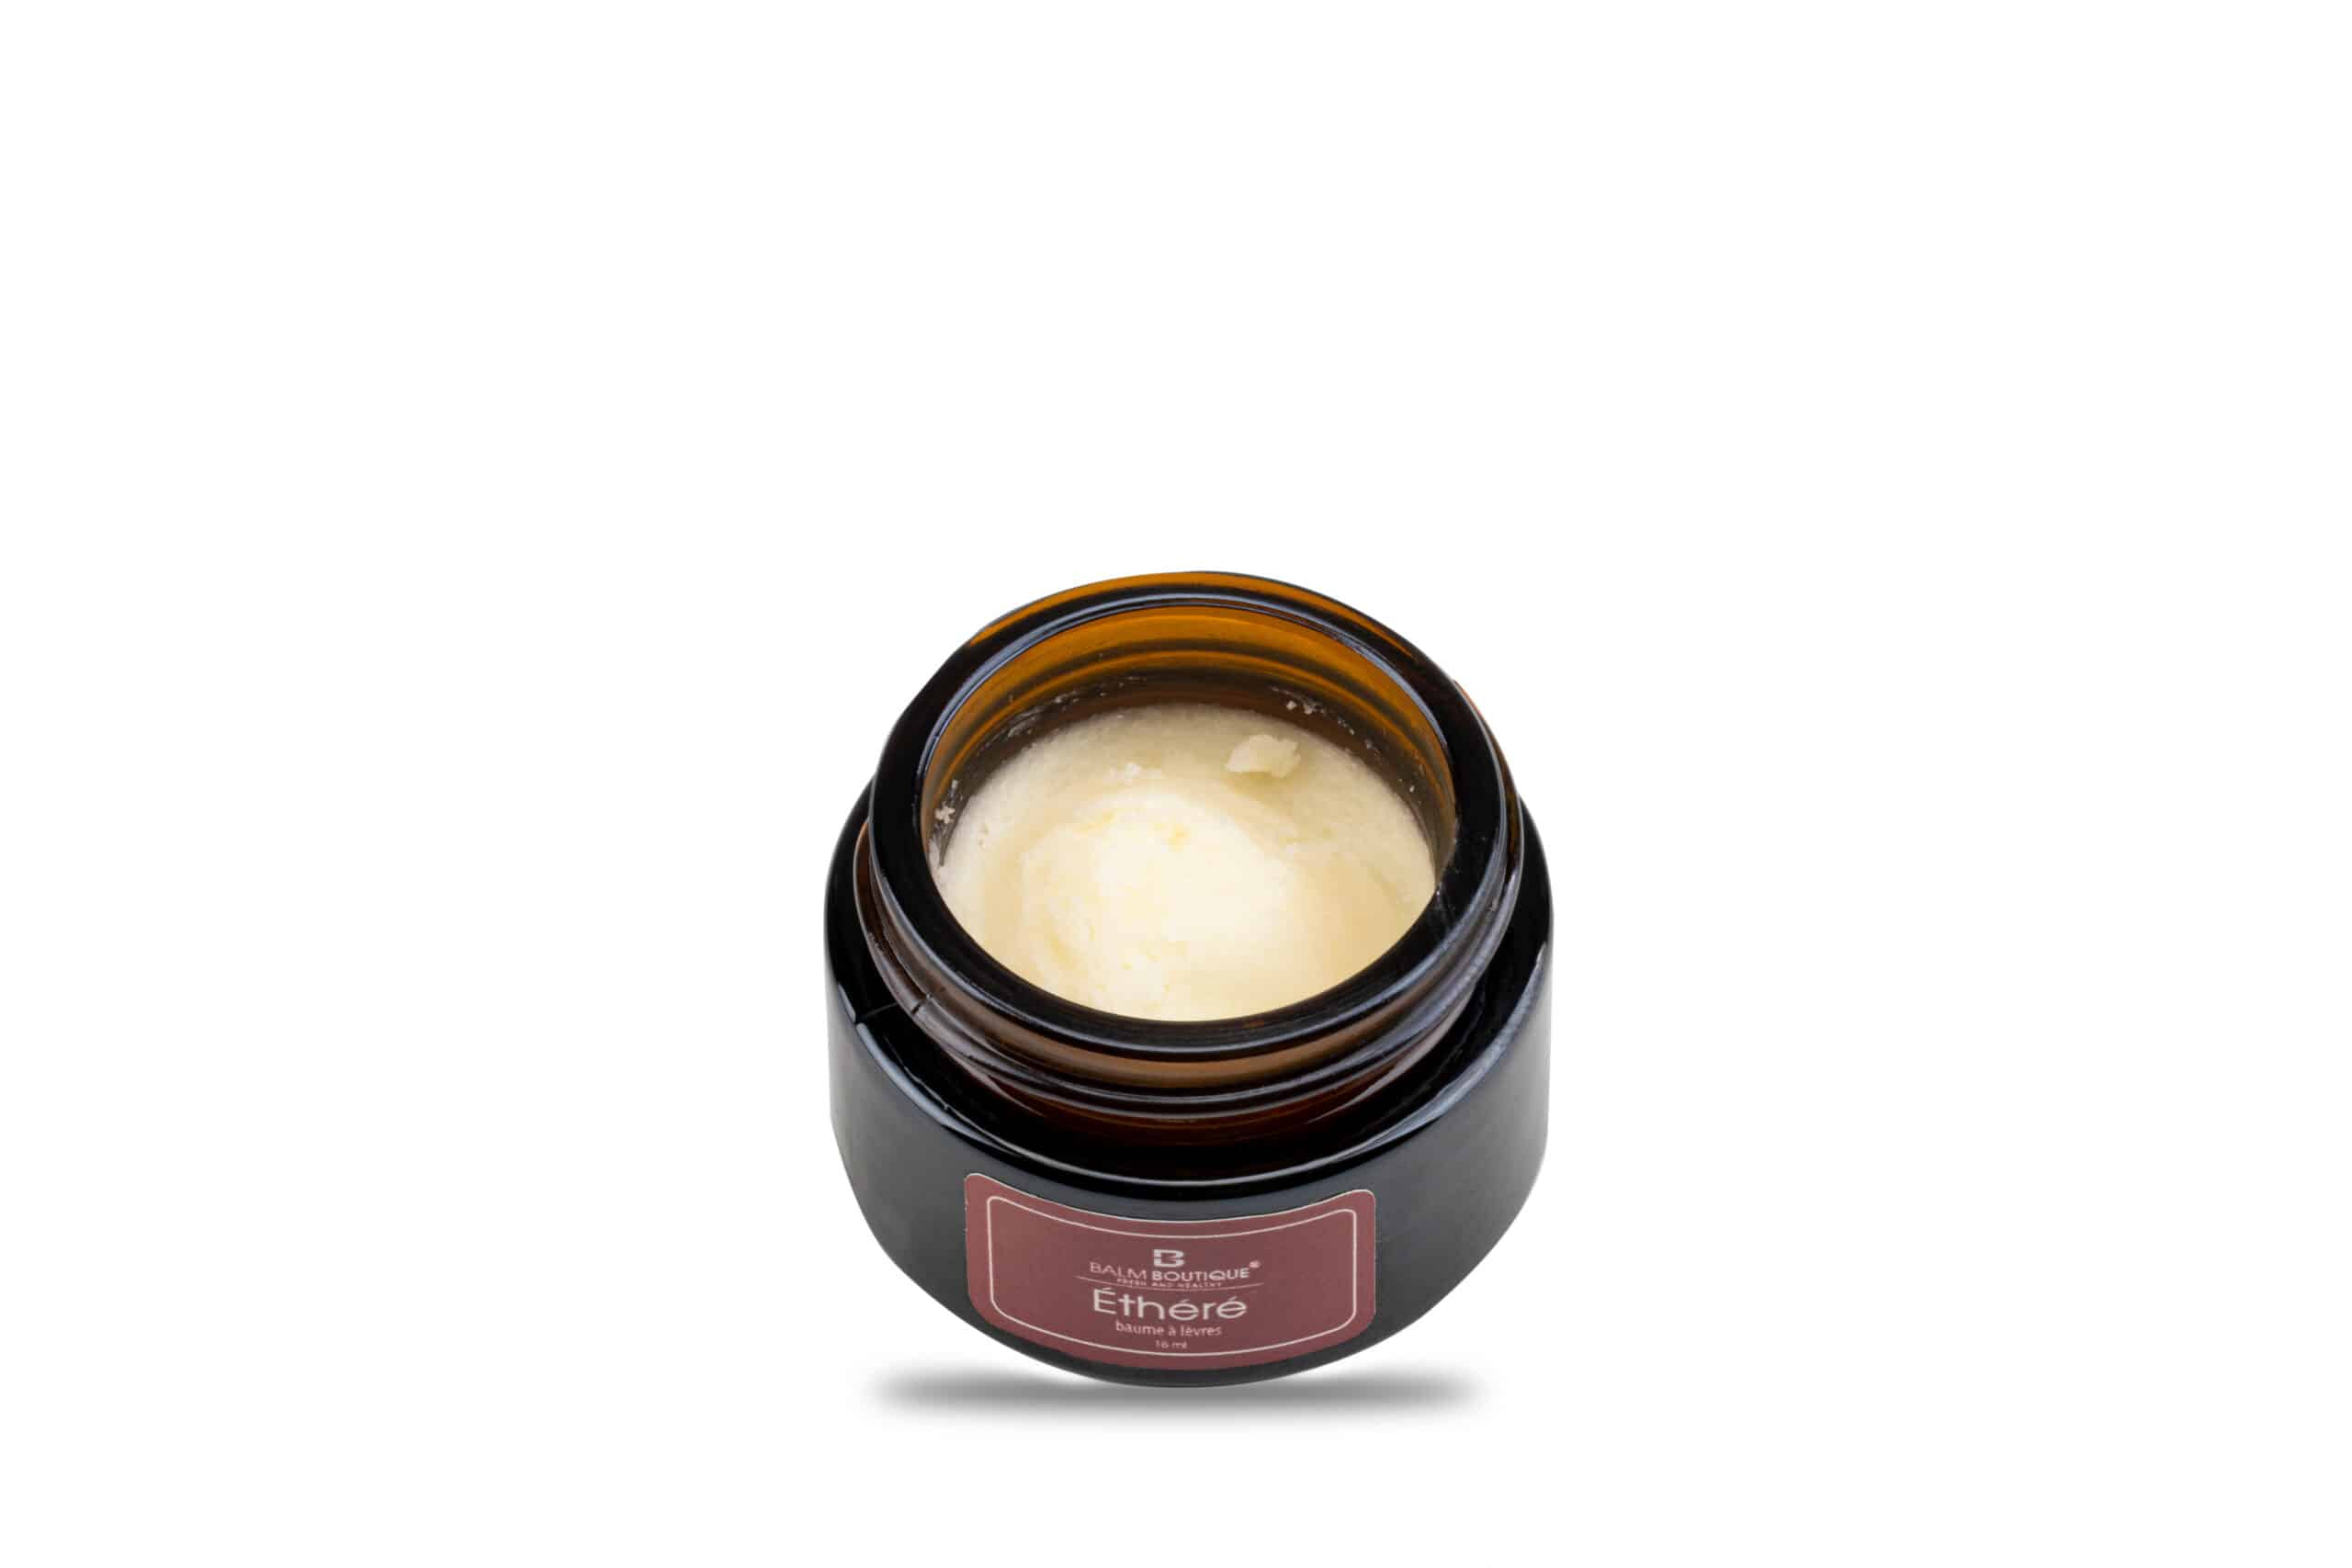 Ethere balsam do ust | ethere baume a levres 15ml scaled